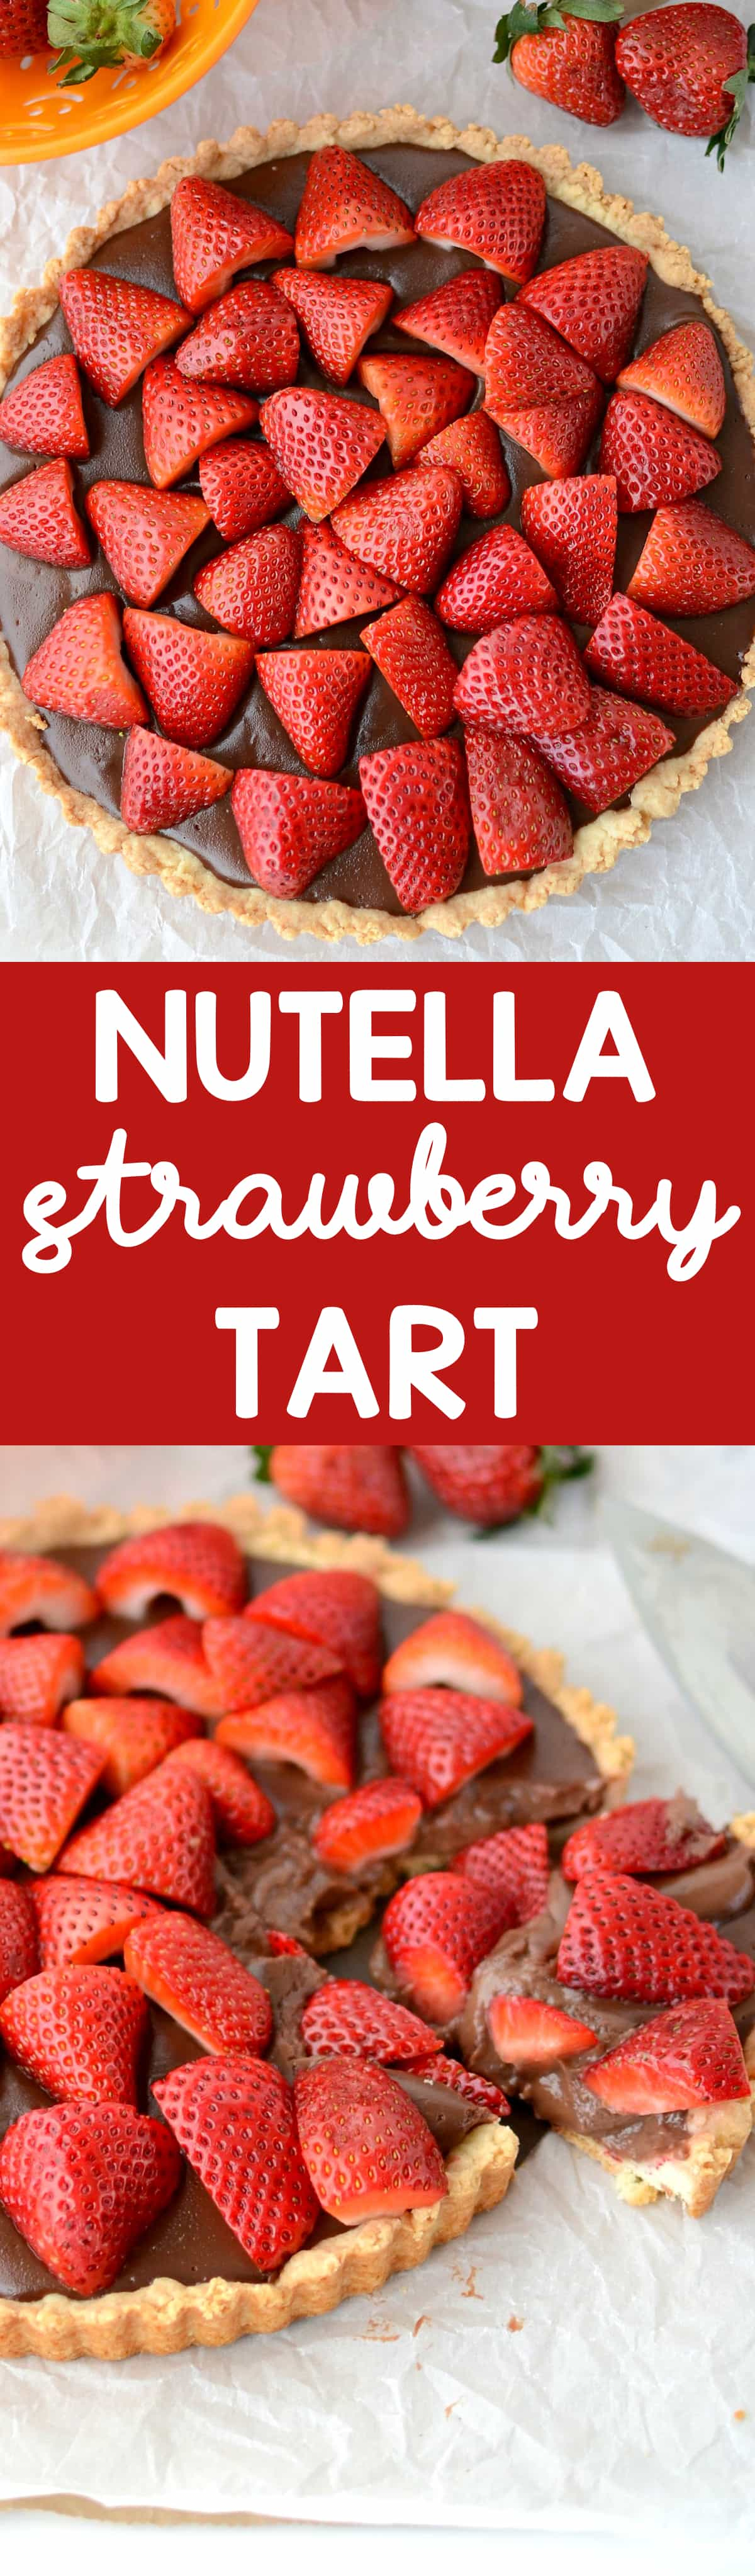 Nutella Strawberry Tart - this easy tart recipe has a pastry crust and is full of homemade Nutella pudding and garnished with fresh strawberries. It's the perfect easy showstopper recipe!